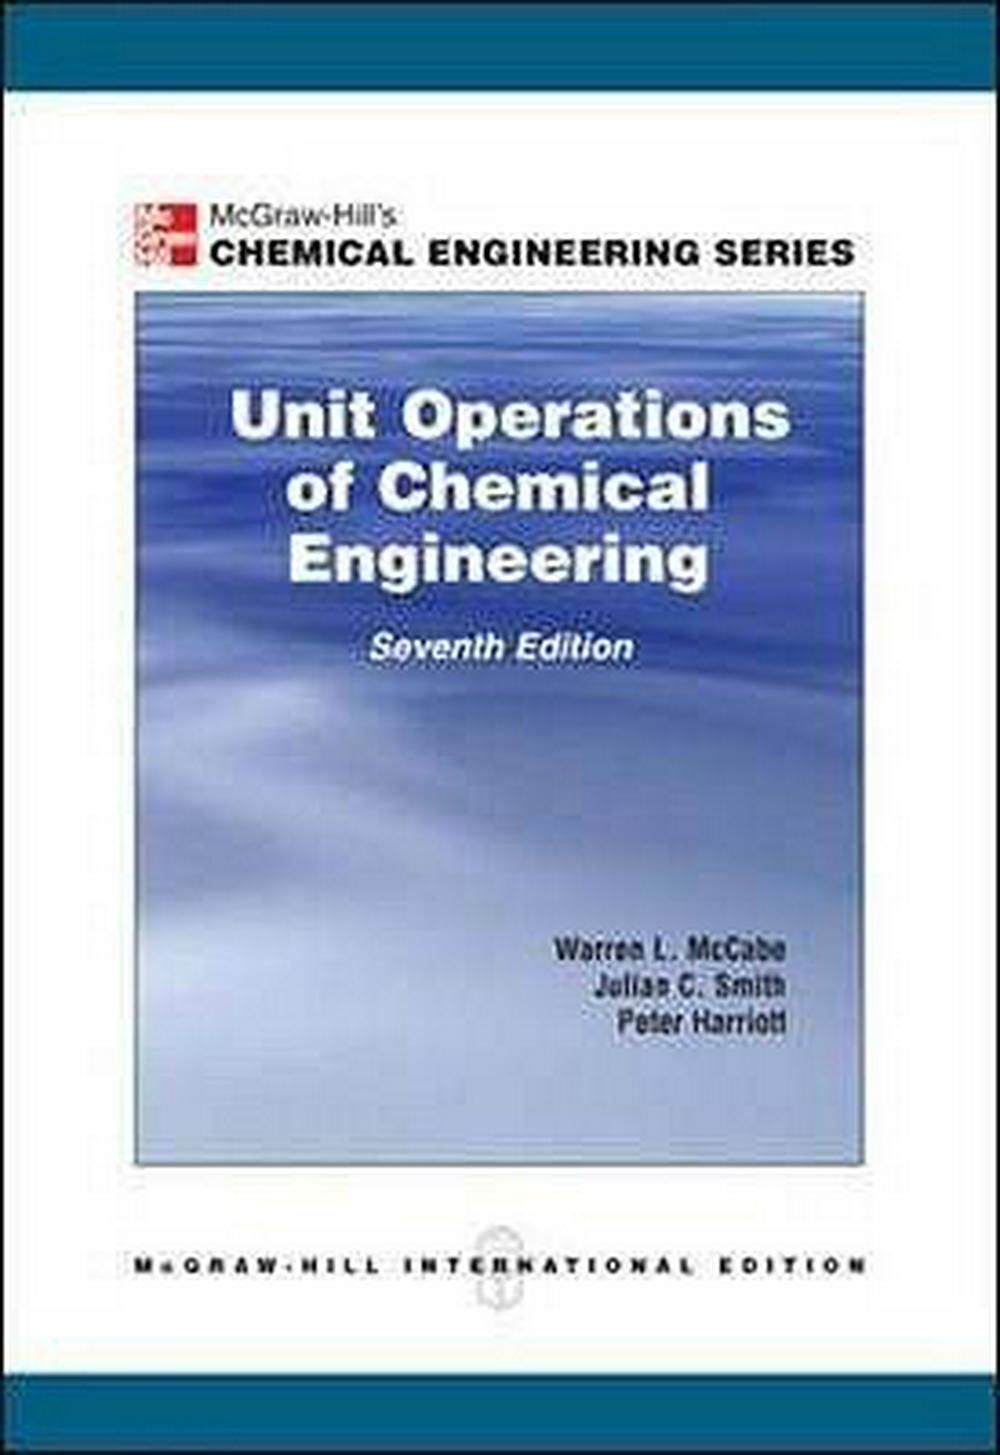 Unit Operations of Chemical Engineering by Warren L. McCabe, ISBN: 9780071247108